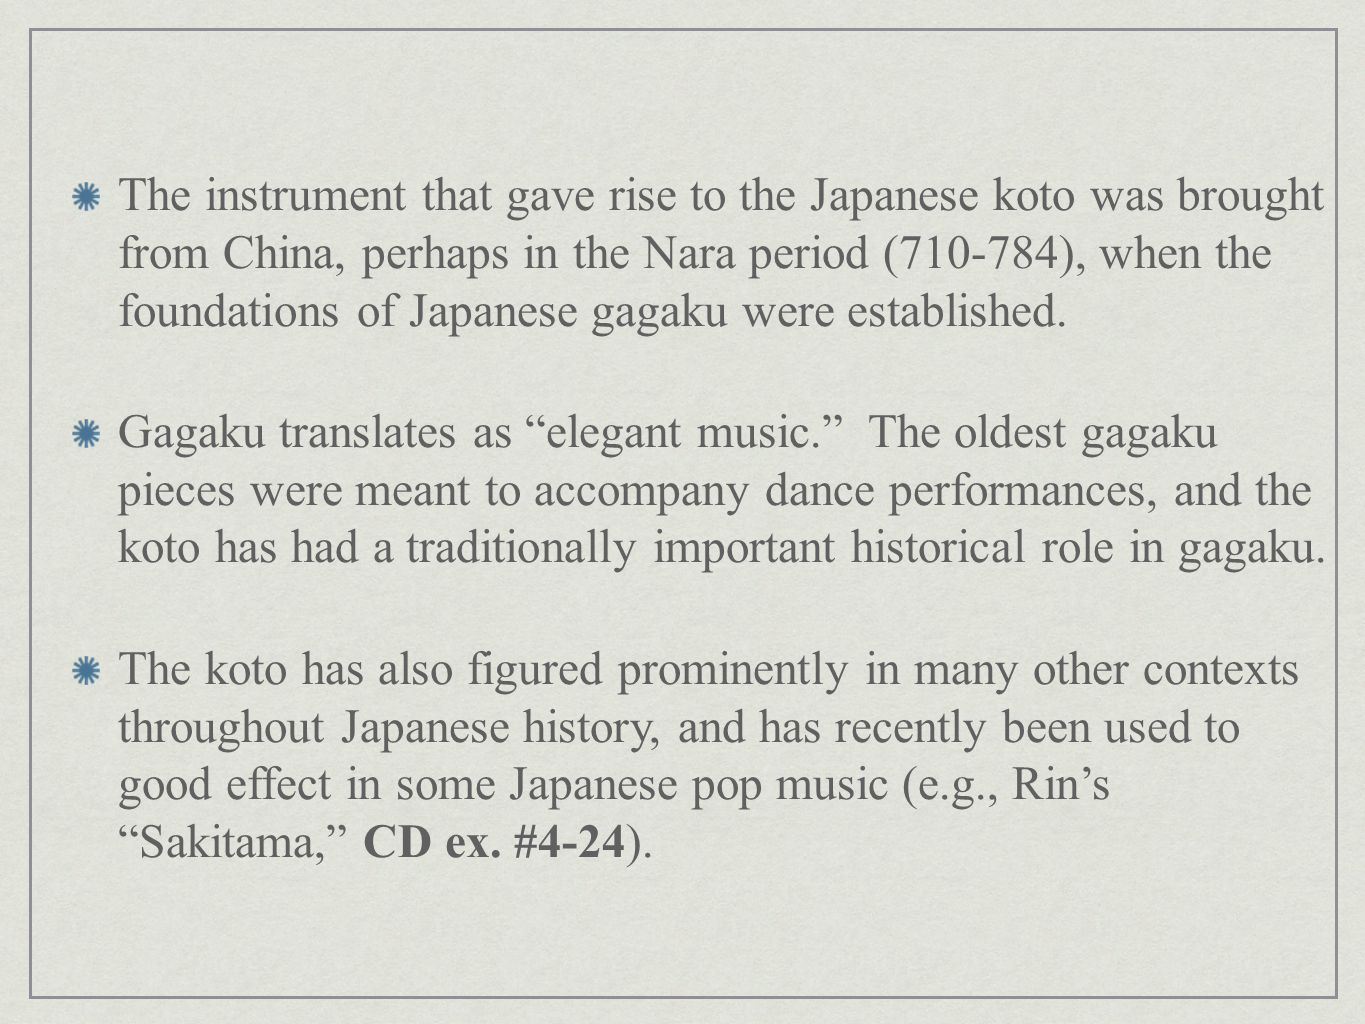 The instrument that gave rise to the Japanese koto was brought from China, perhaps in the Nara period (710-784), when the foundations of Japanese gagaku were established.